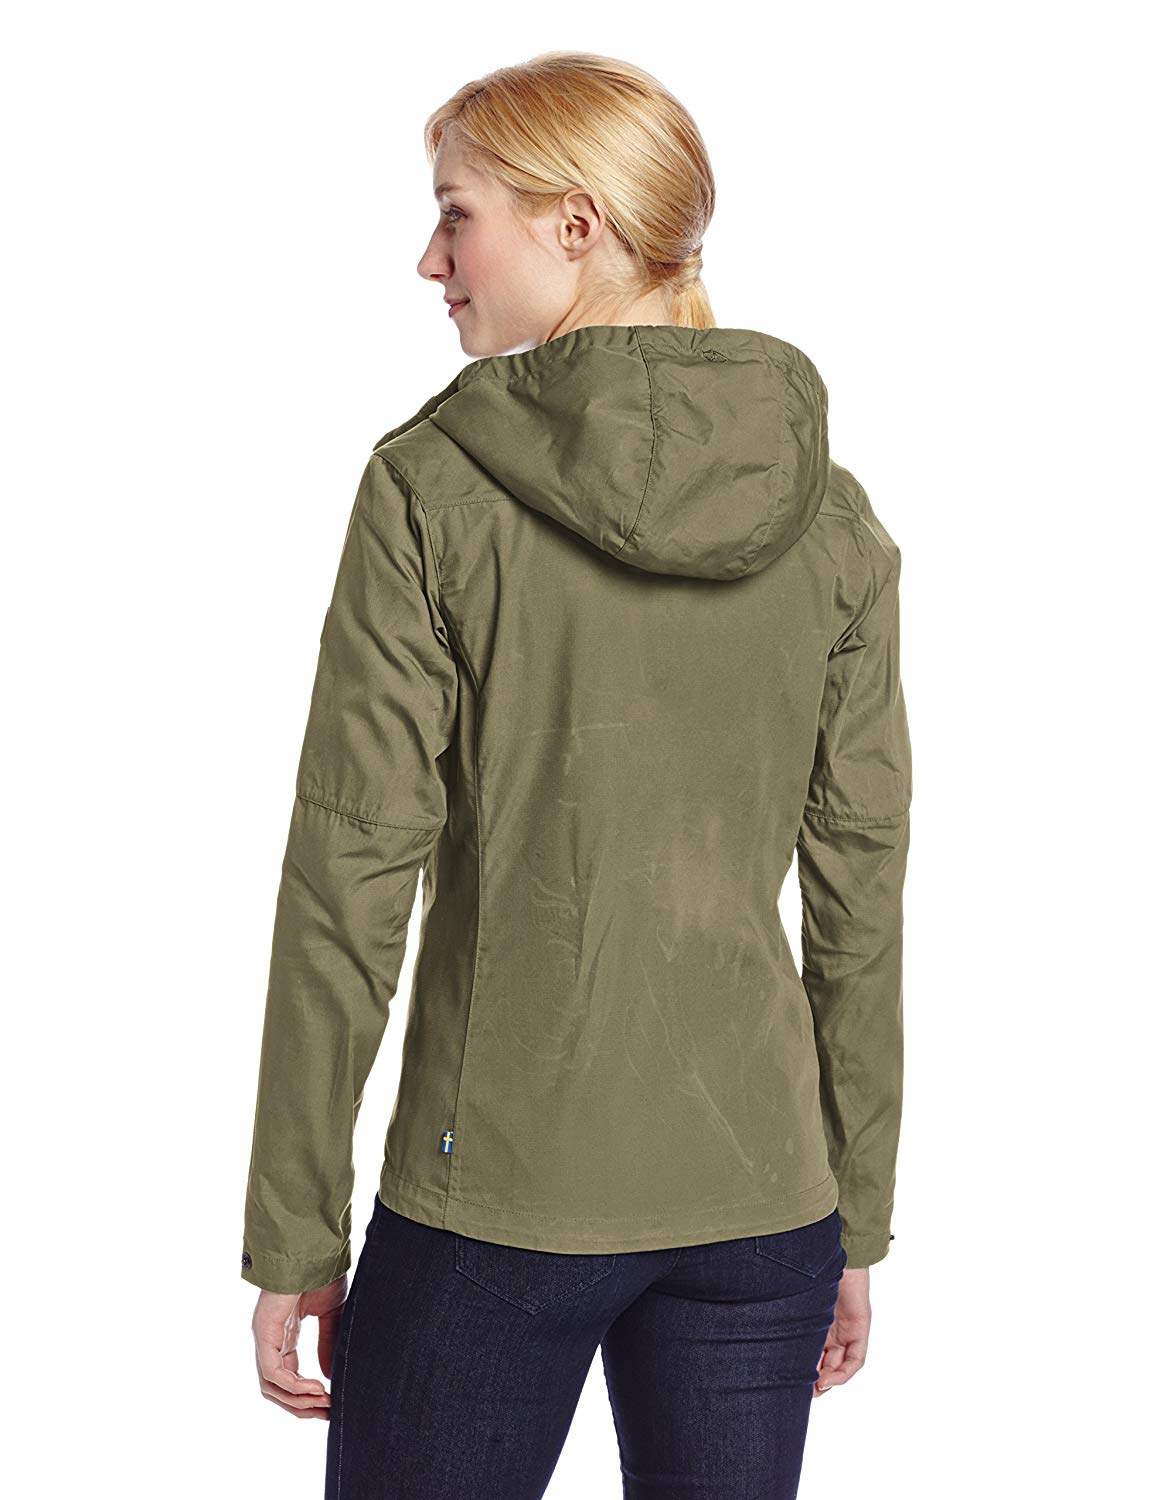 The back of Kate's Fjallraven Stina jacket